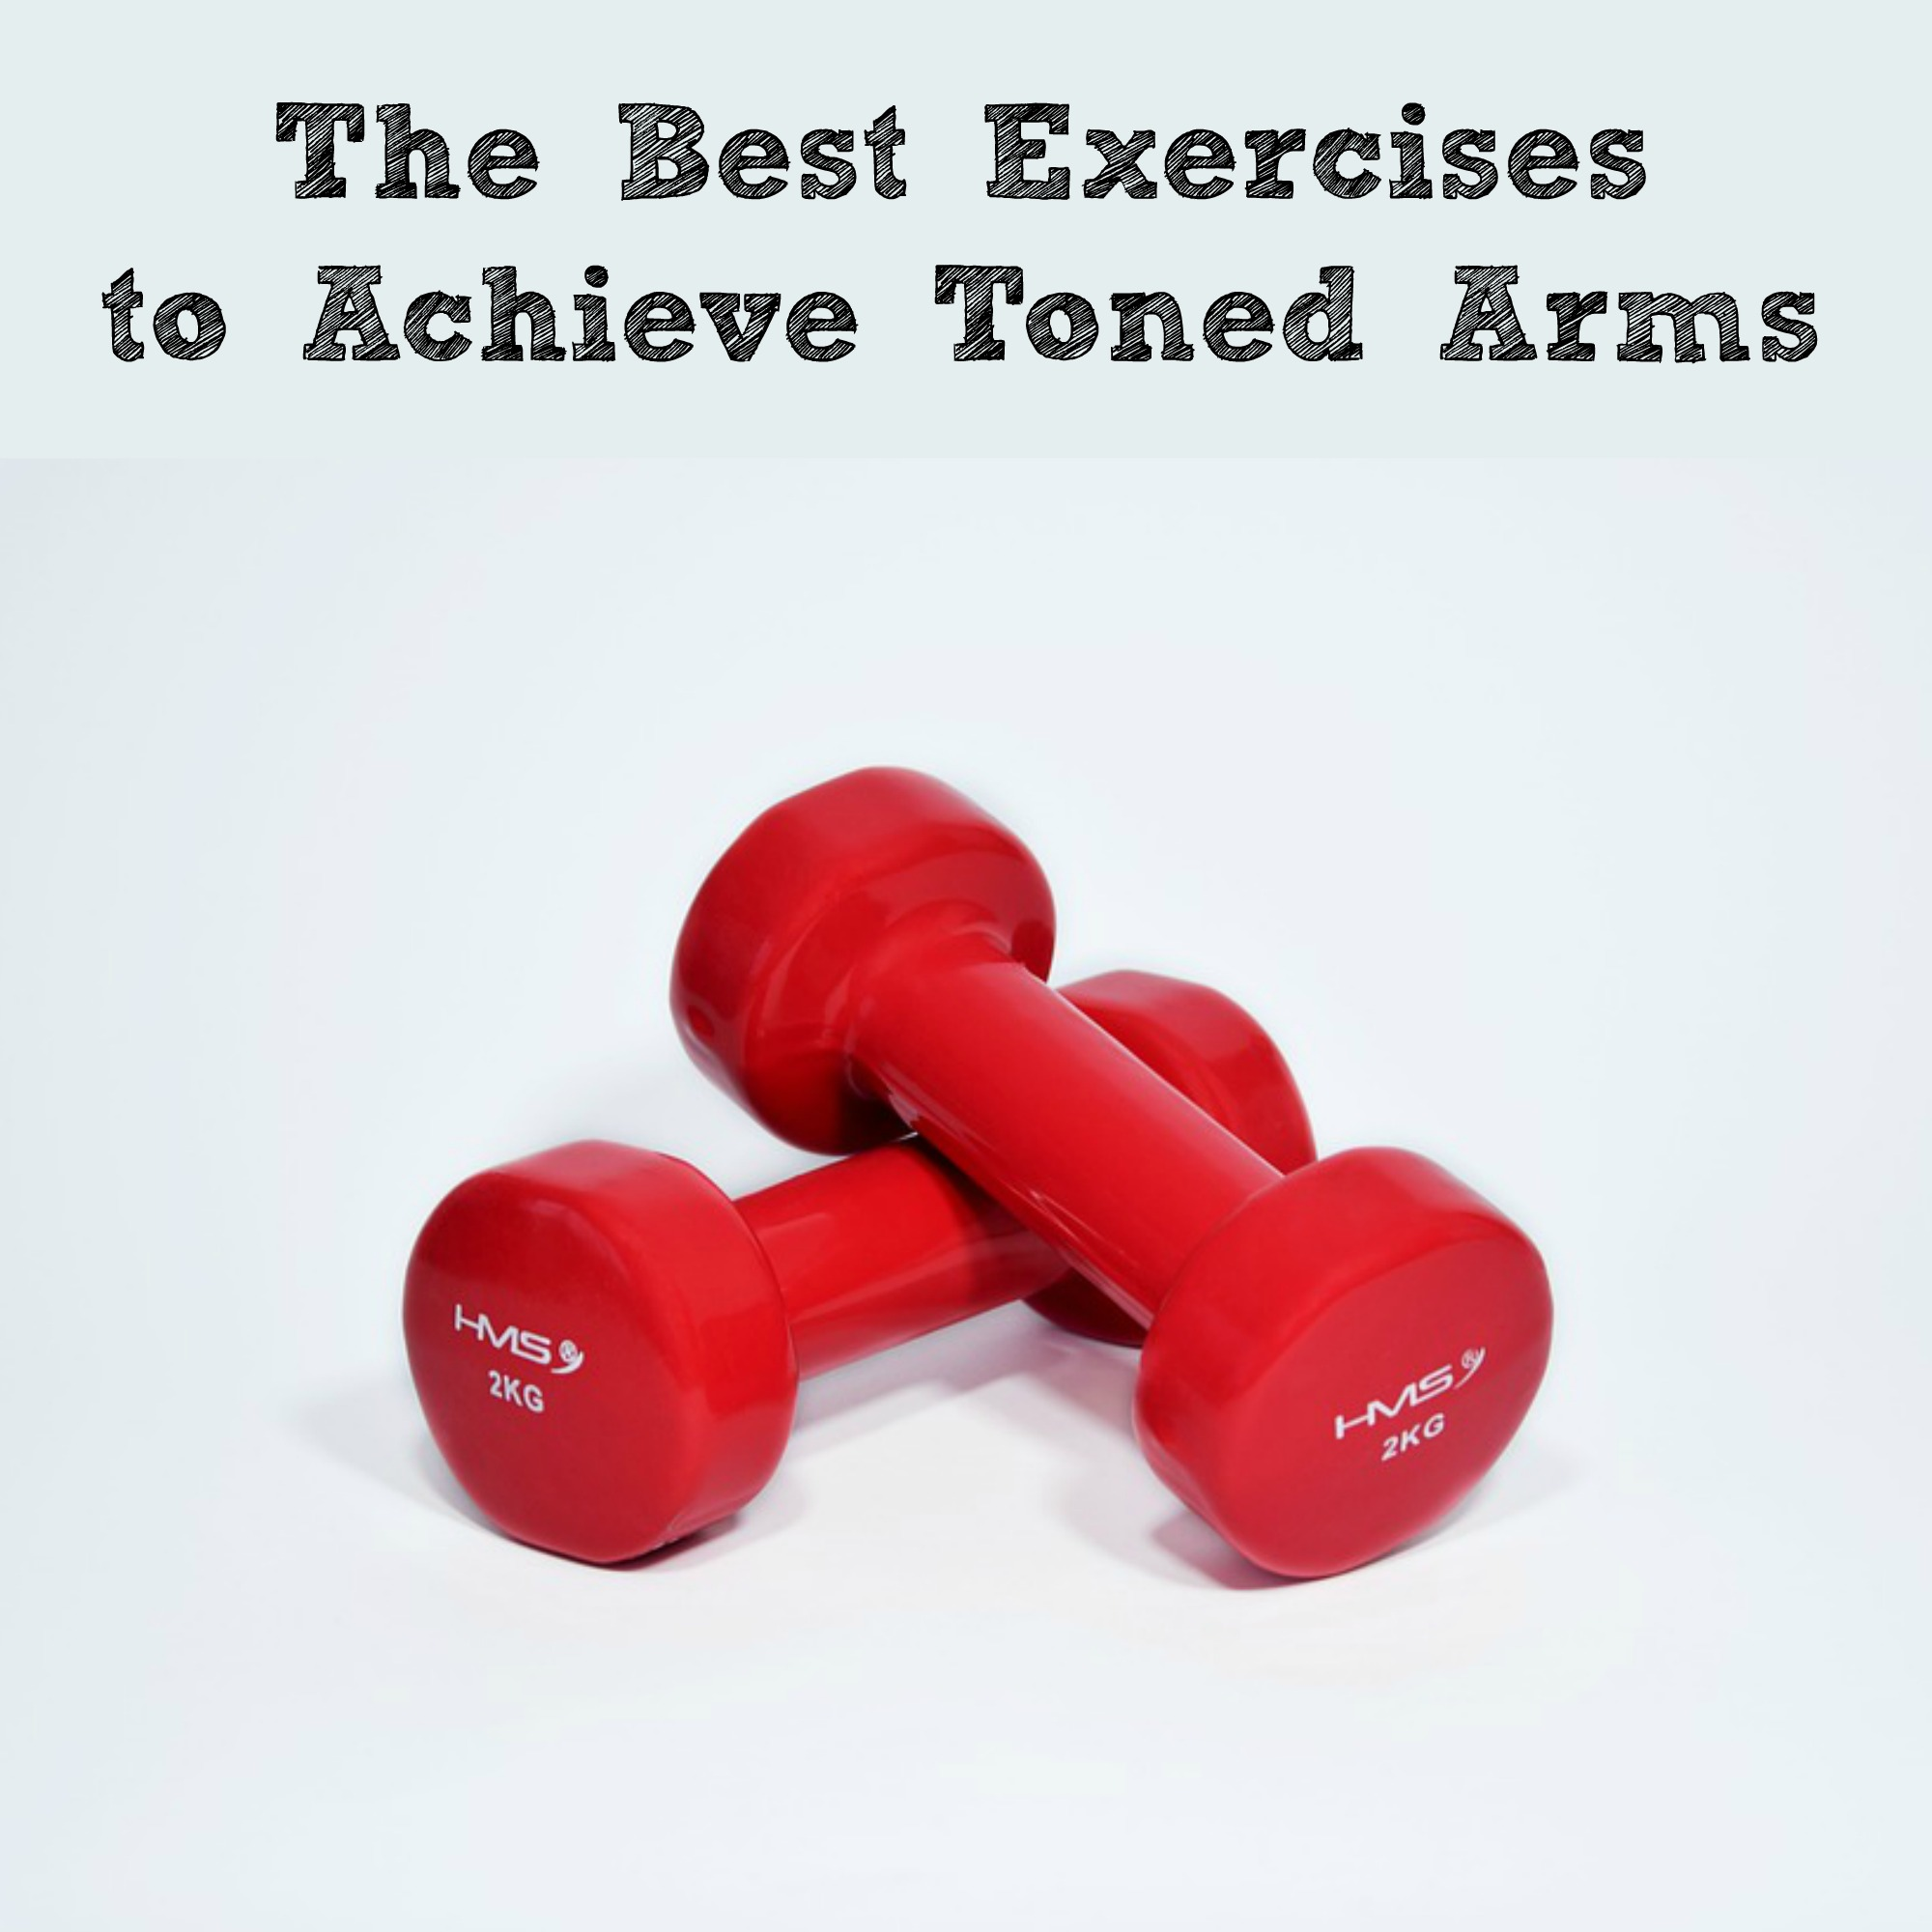 Exercises to Achieve Toned Arms